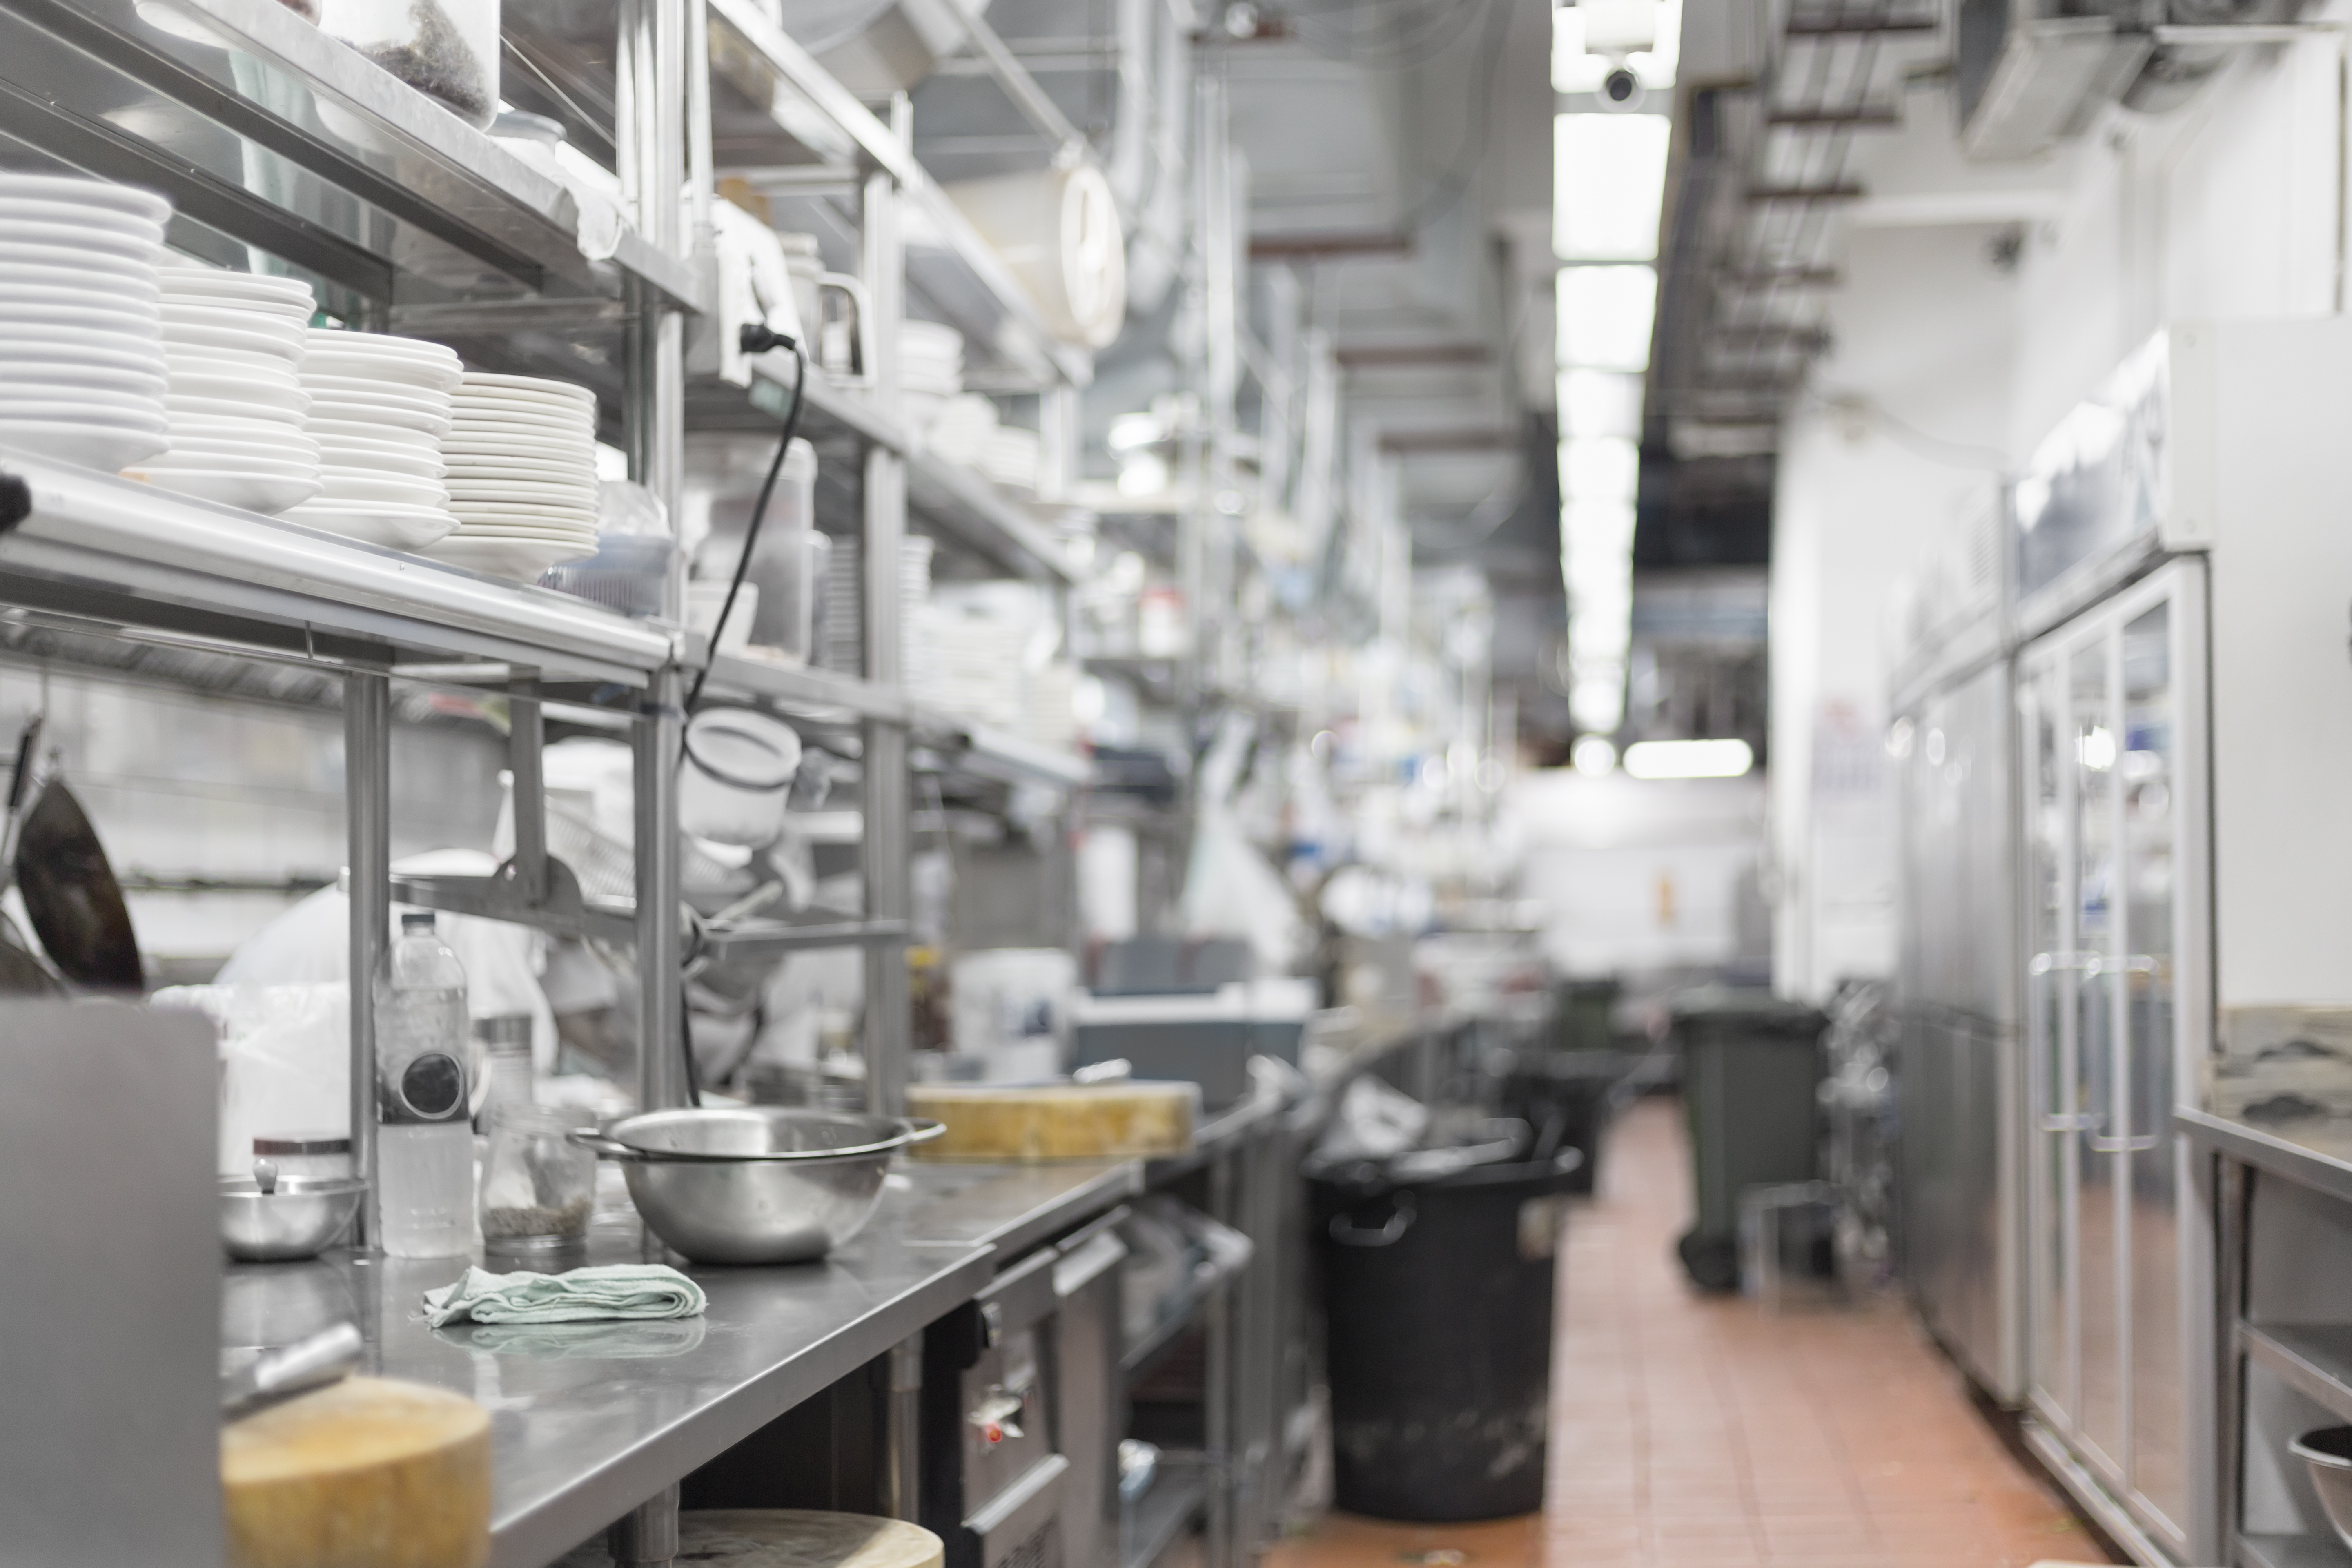 A restaurant kitchen with a worker behind the line, covered by shelves of plates and dinnerware